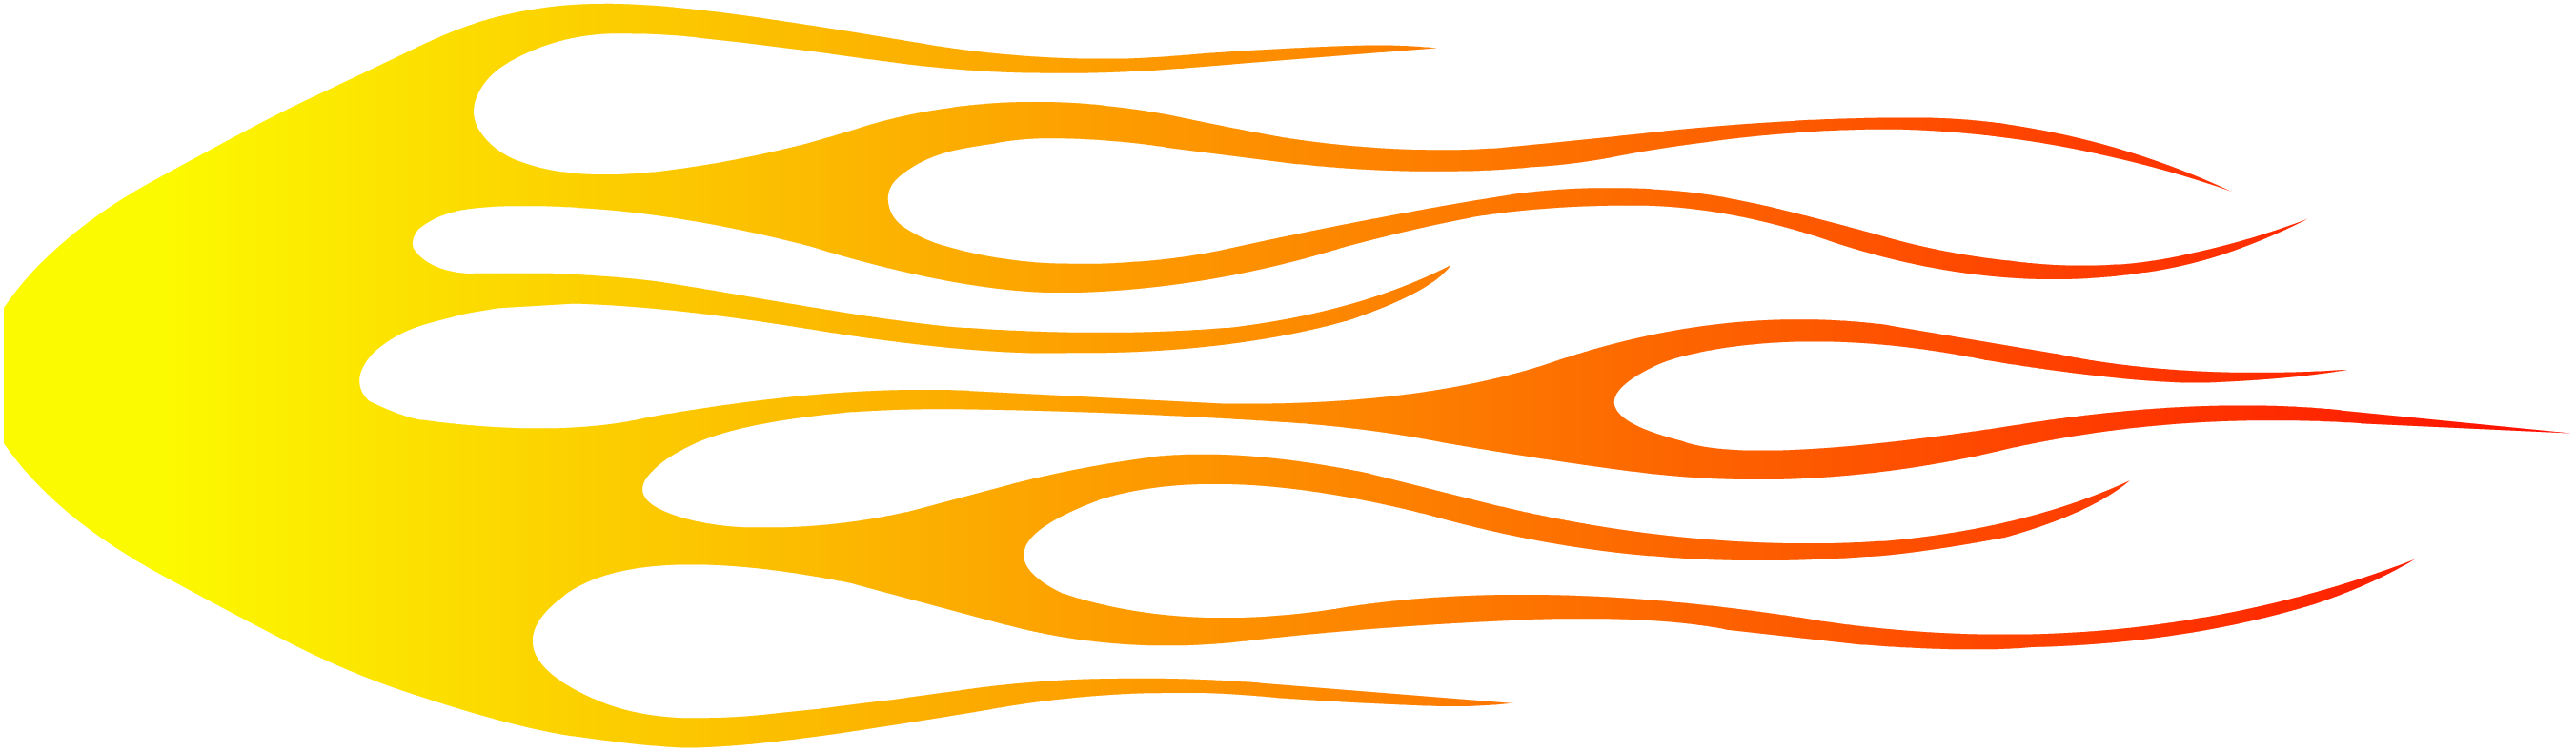 Flame decal png. Car drawing clip art